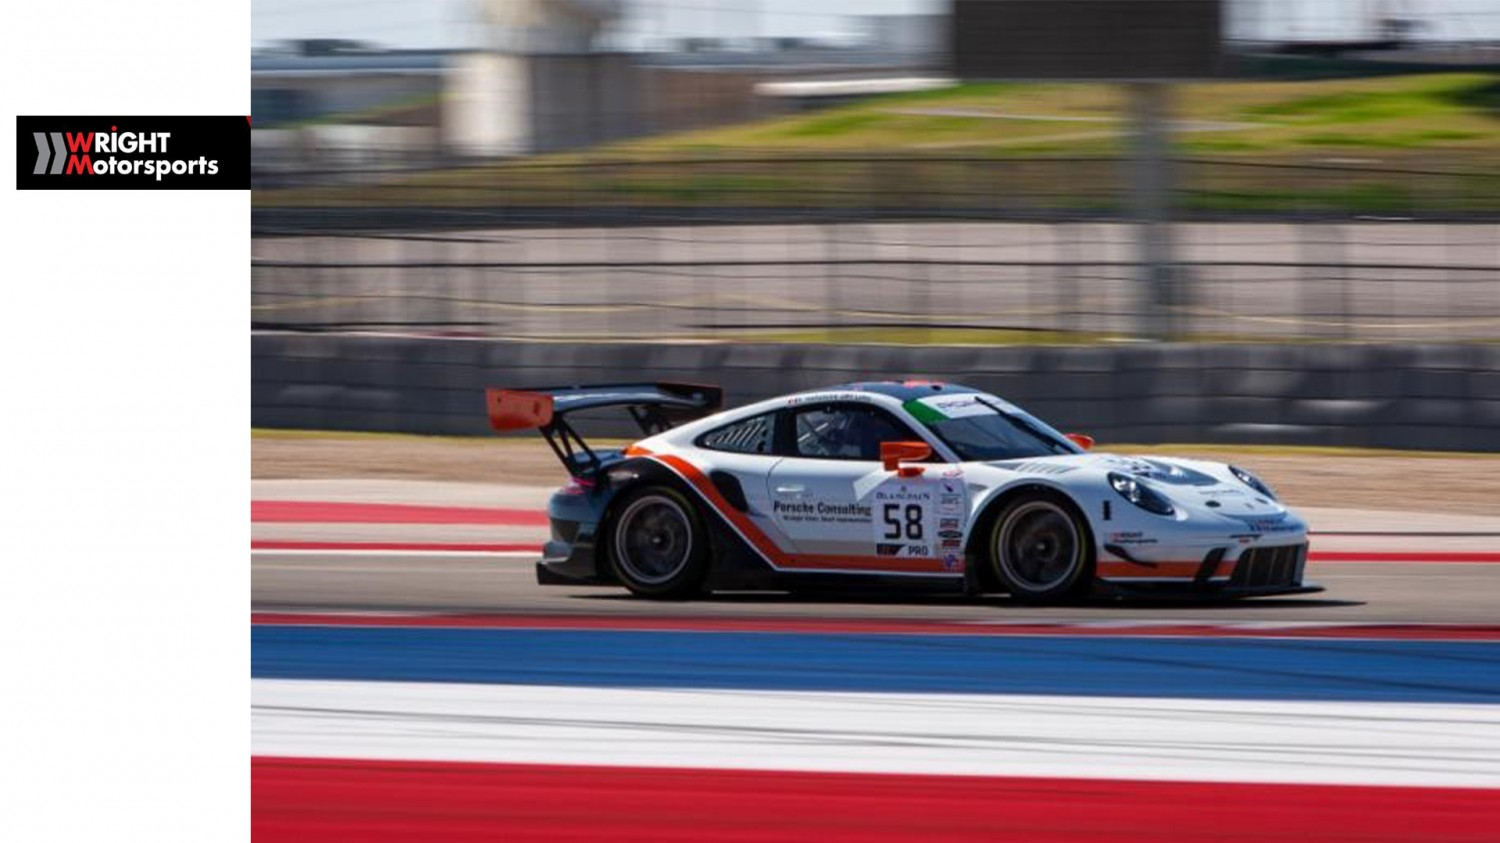 Wright Motorsports Primed for Blancpain GT World Challenge America Return